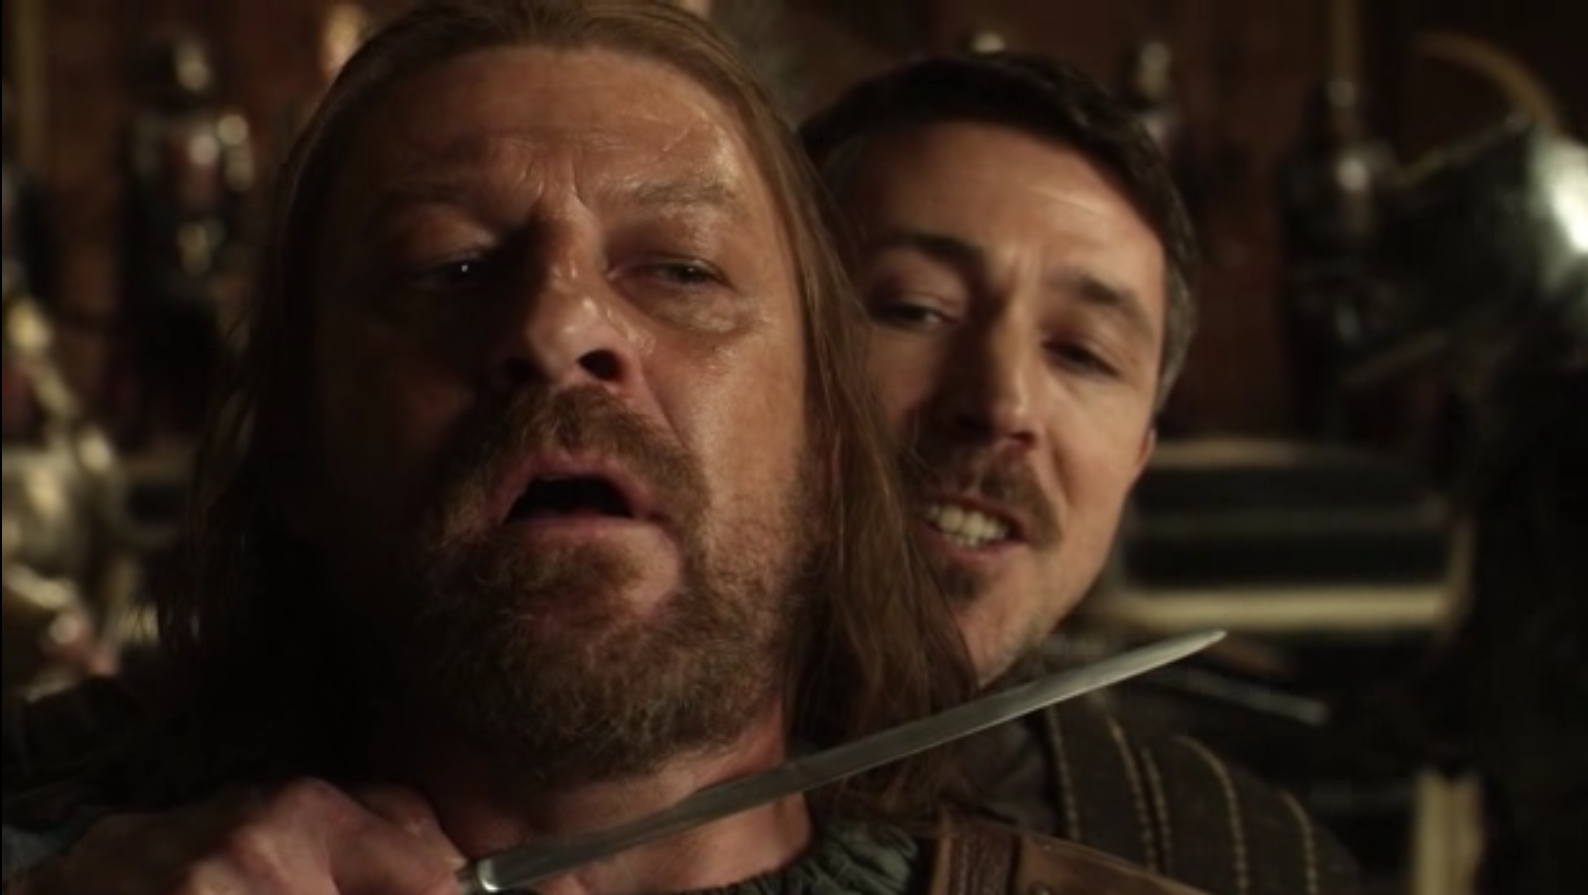 Game of Thrones' Sean Bean has turned down other roles where his character died